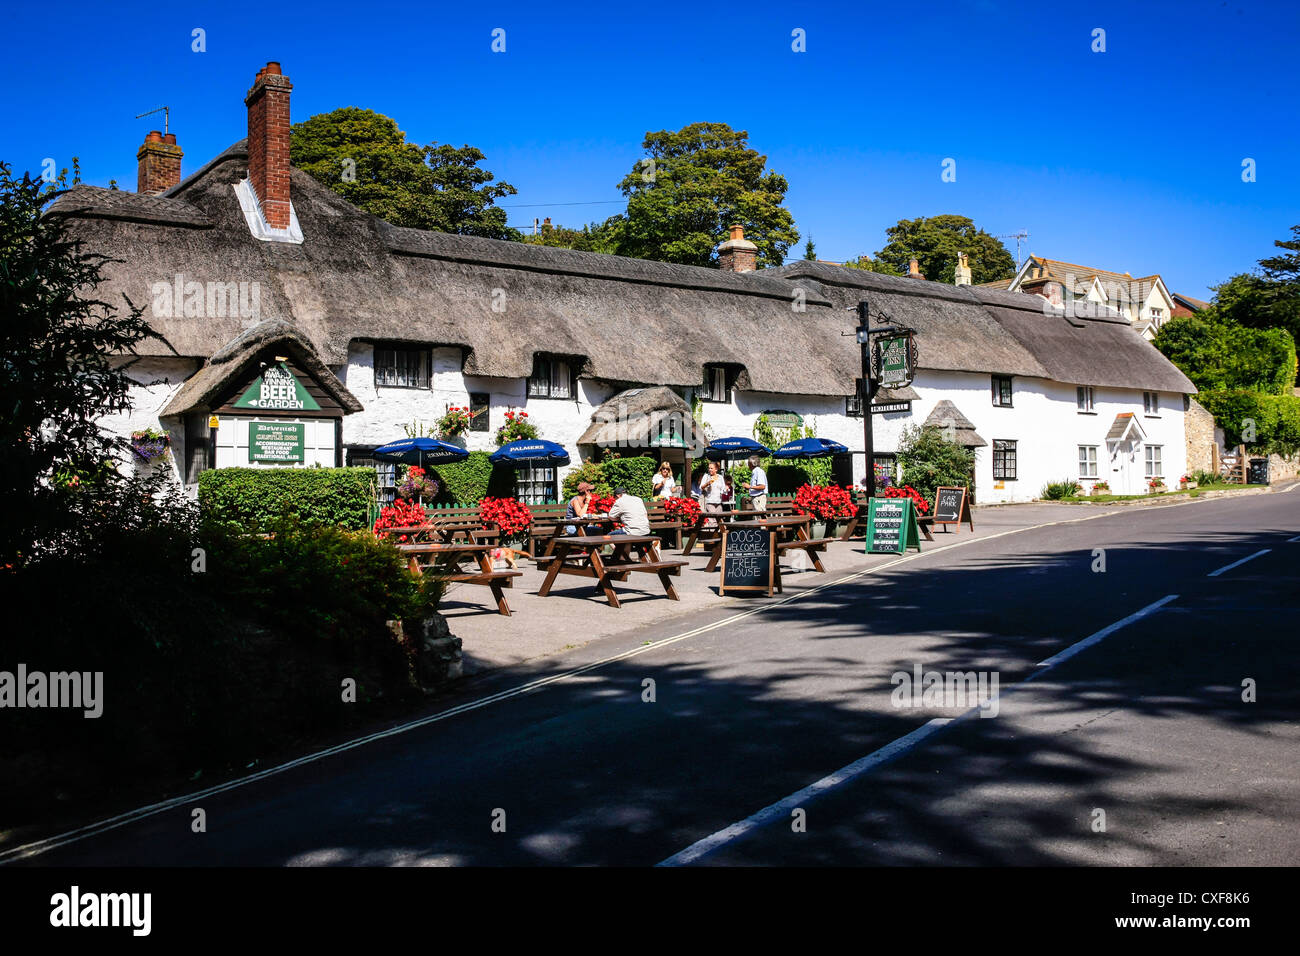 The Thatched roof Castle Inn pub at Lulworth Dorset Stock Photo